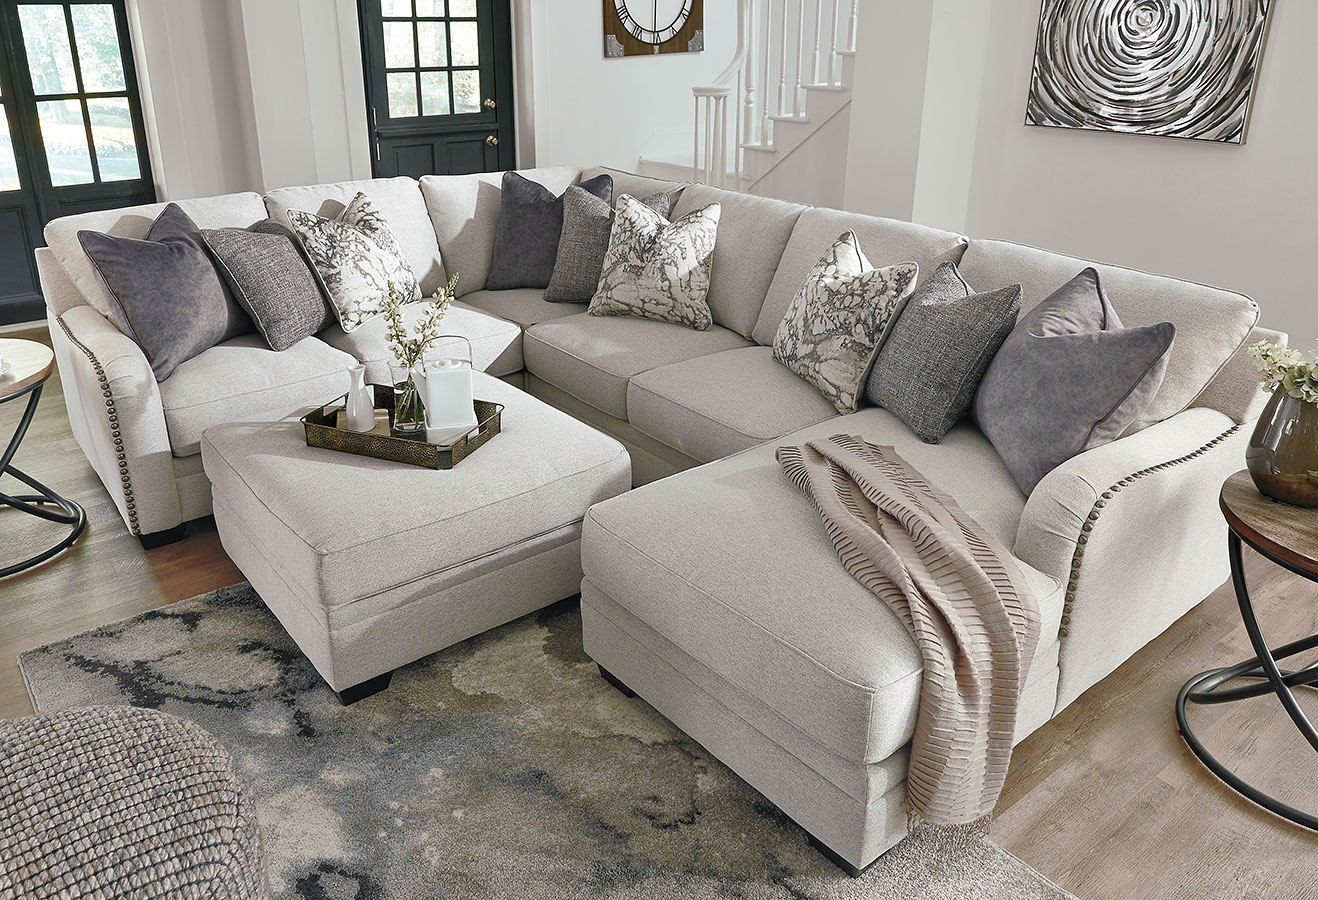 Dellara Chalk Modular Sectional Set By Signature Design By Ashley 1 Review S Furniturepick